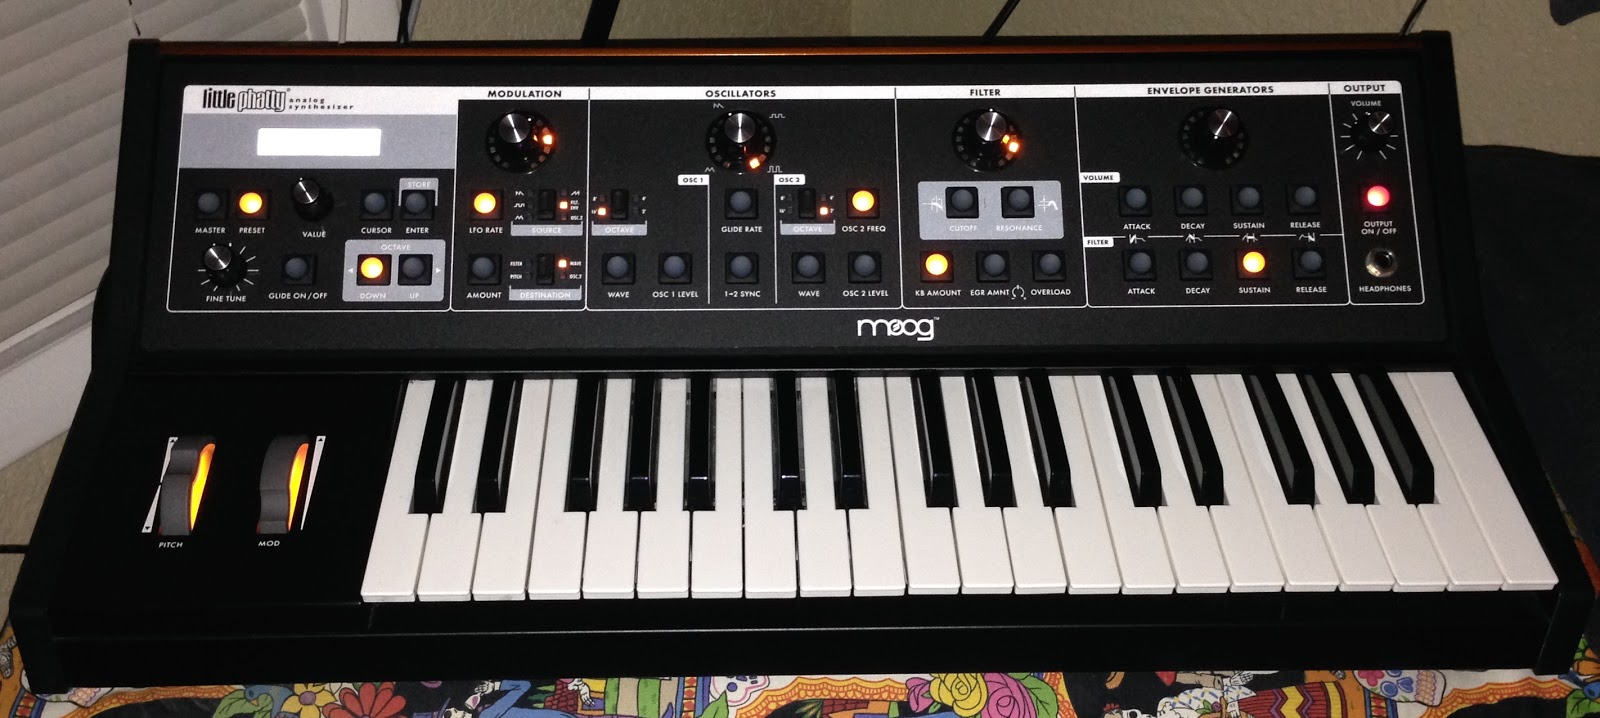 MOOG Little Phatty Stage Synthesizer Driver UPDATE